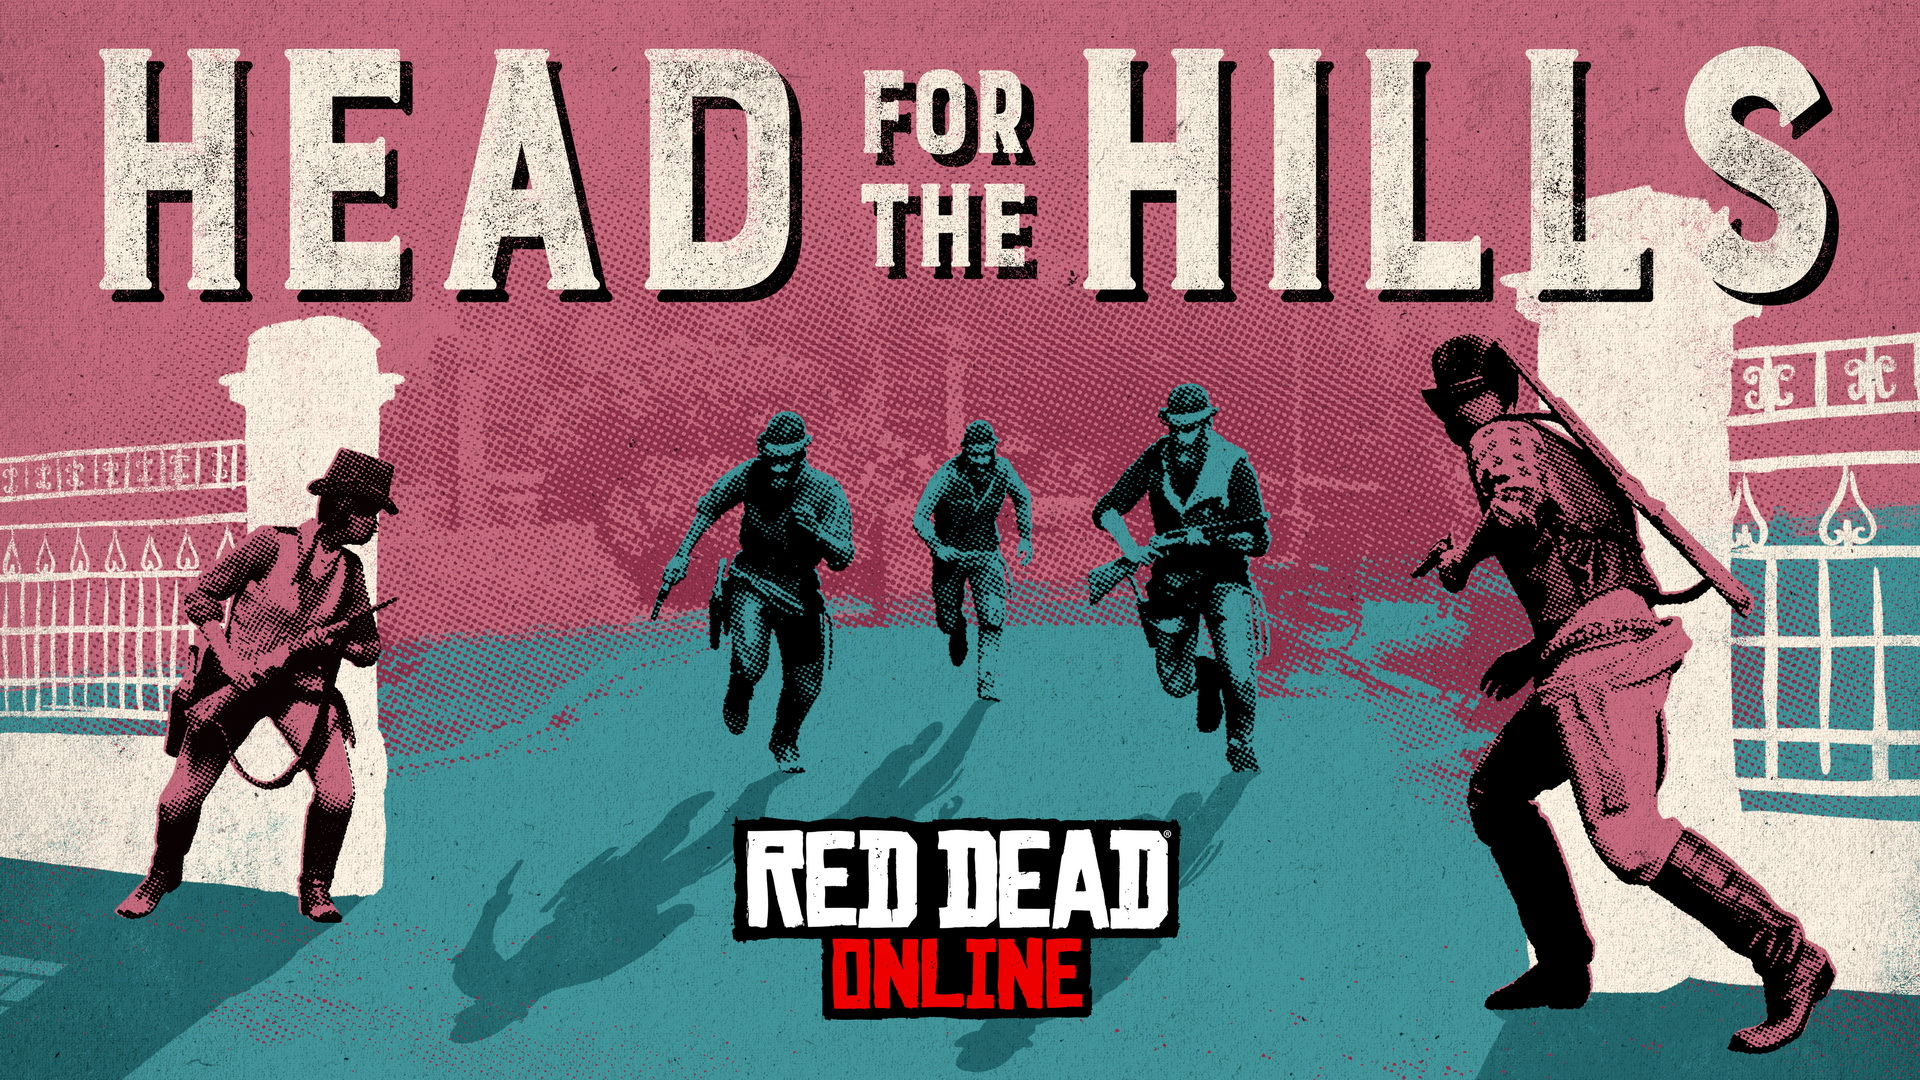 red-dead-online-artwork-16-hd.jpg